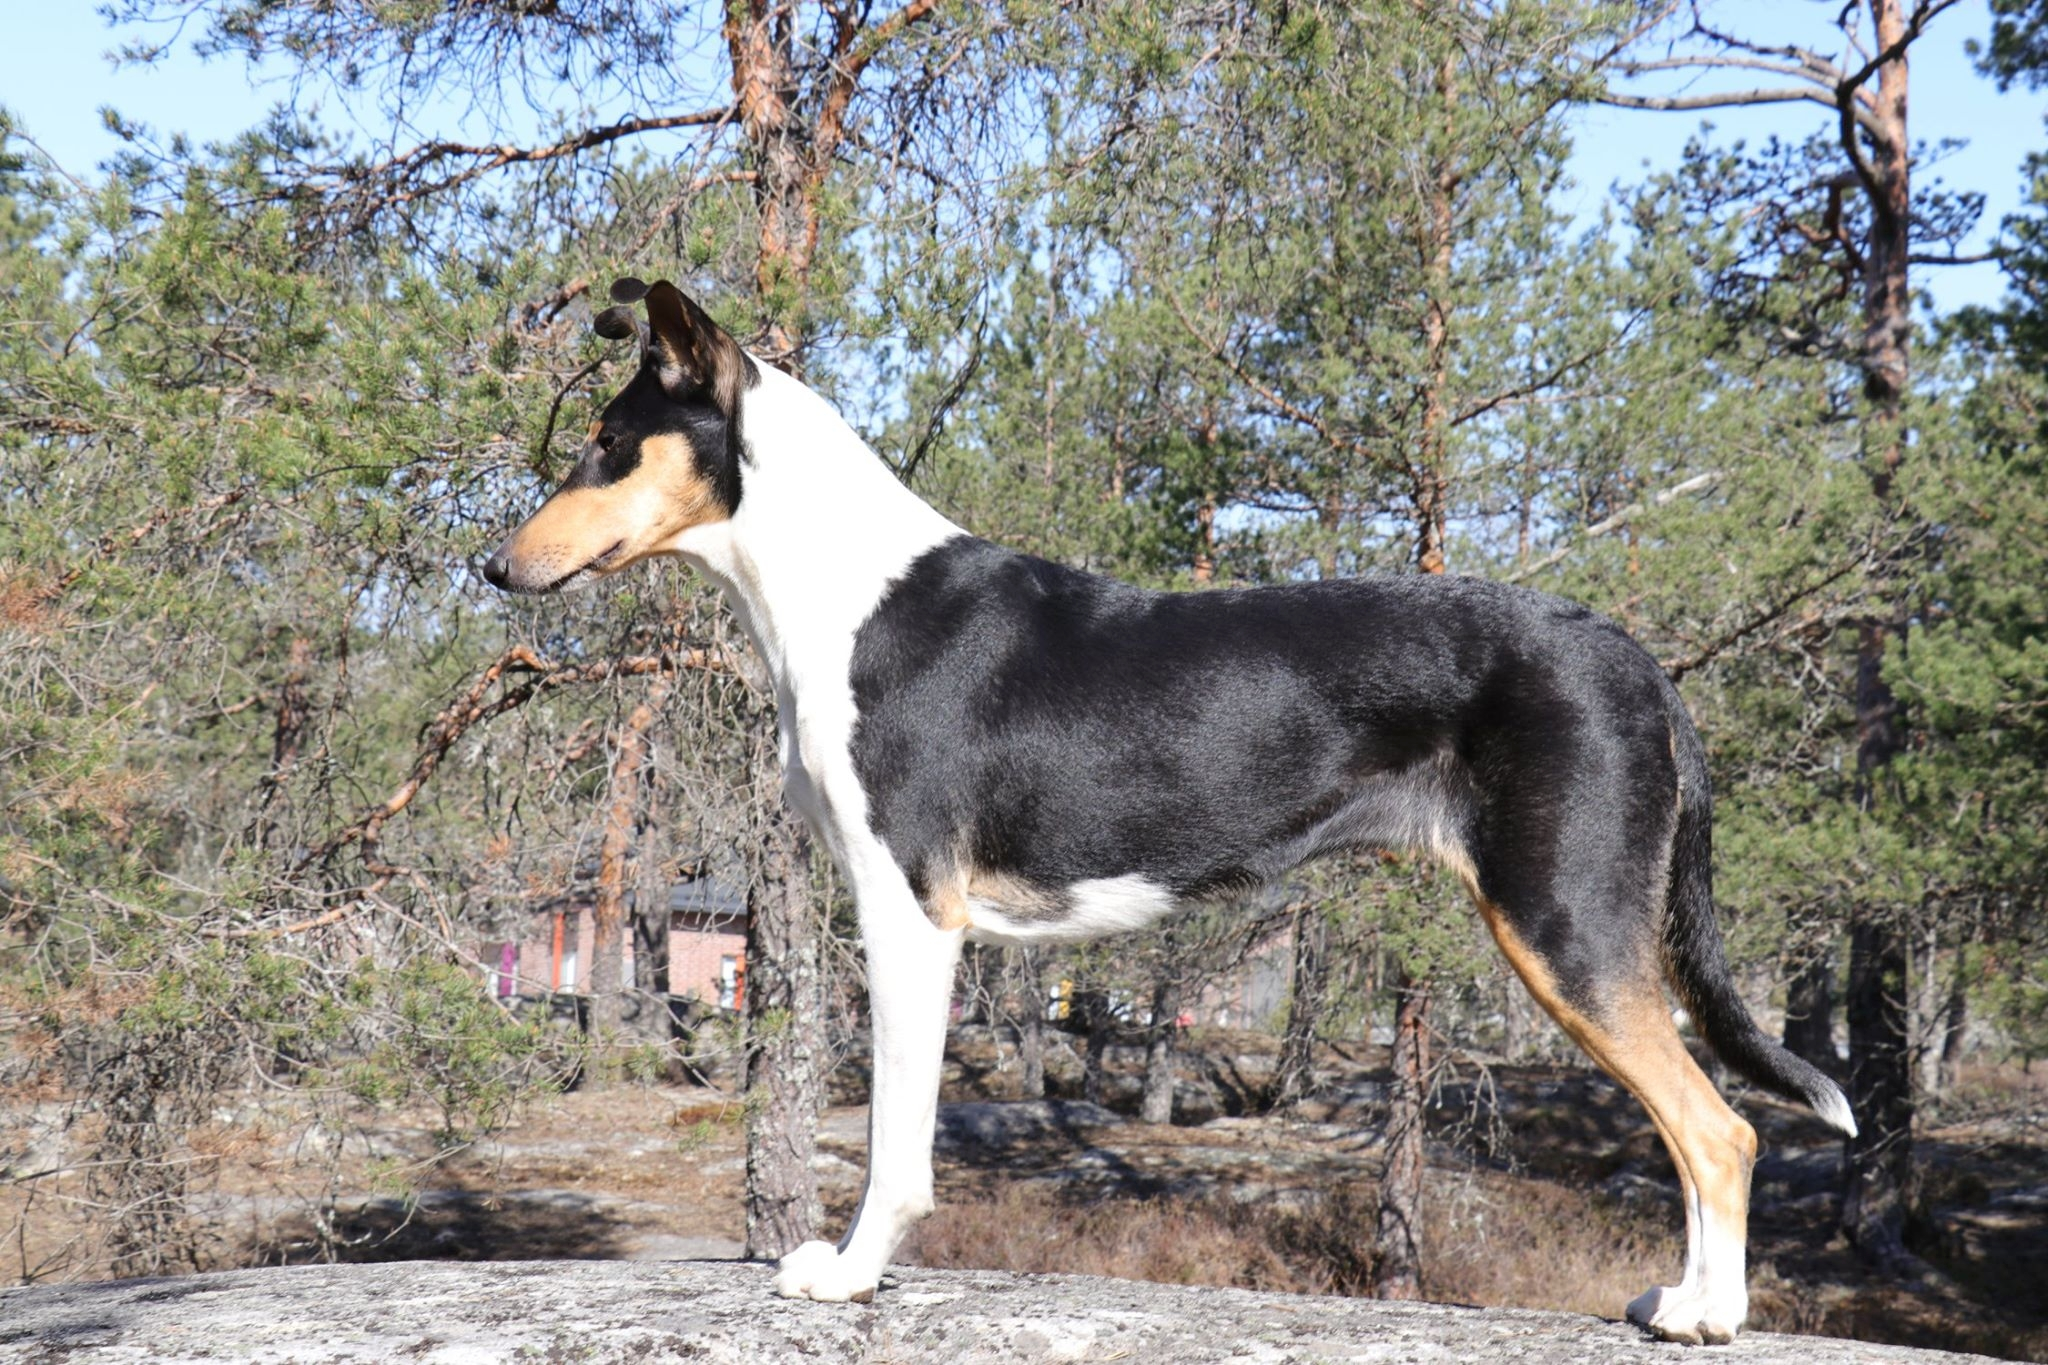 Sileäkarvainen collie, Diamondfox Enchanted Love